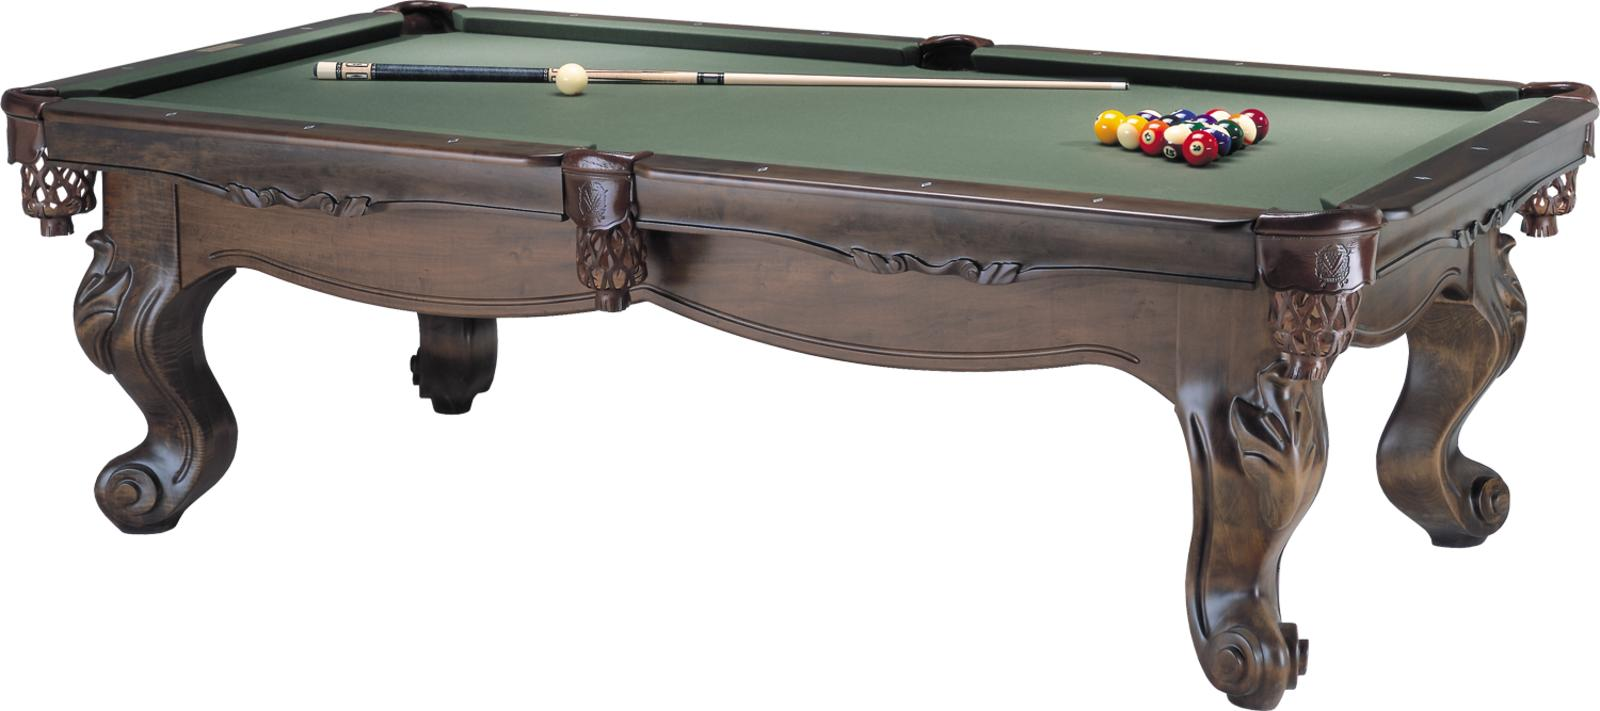 Scottsdale austin billiards austin texas 39 premier pool table retailer - Photos of pool tables ...